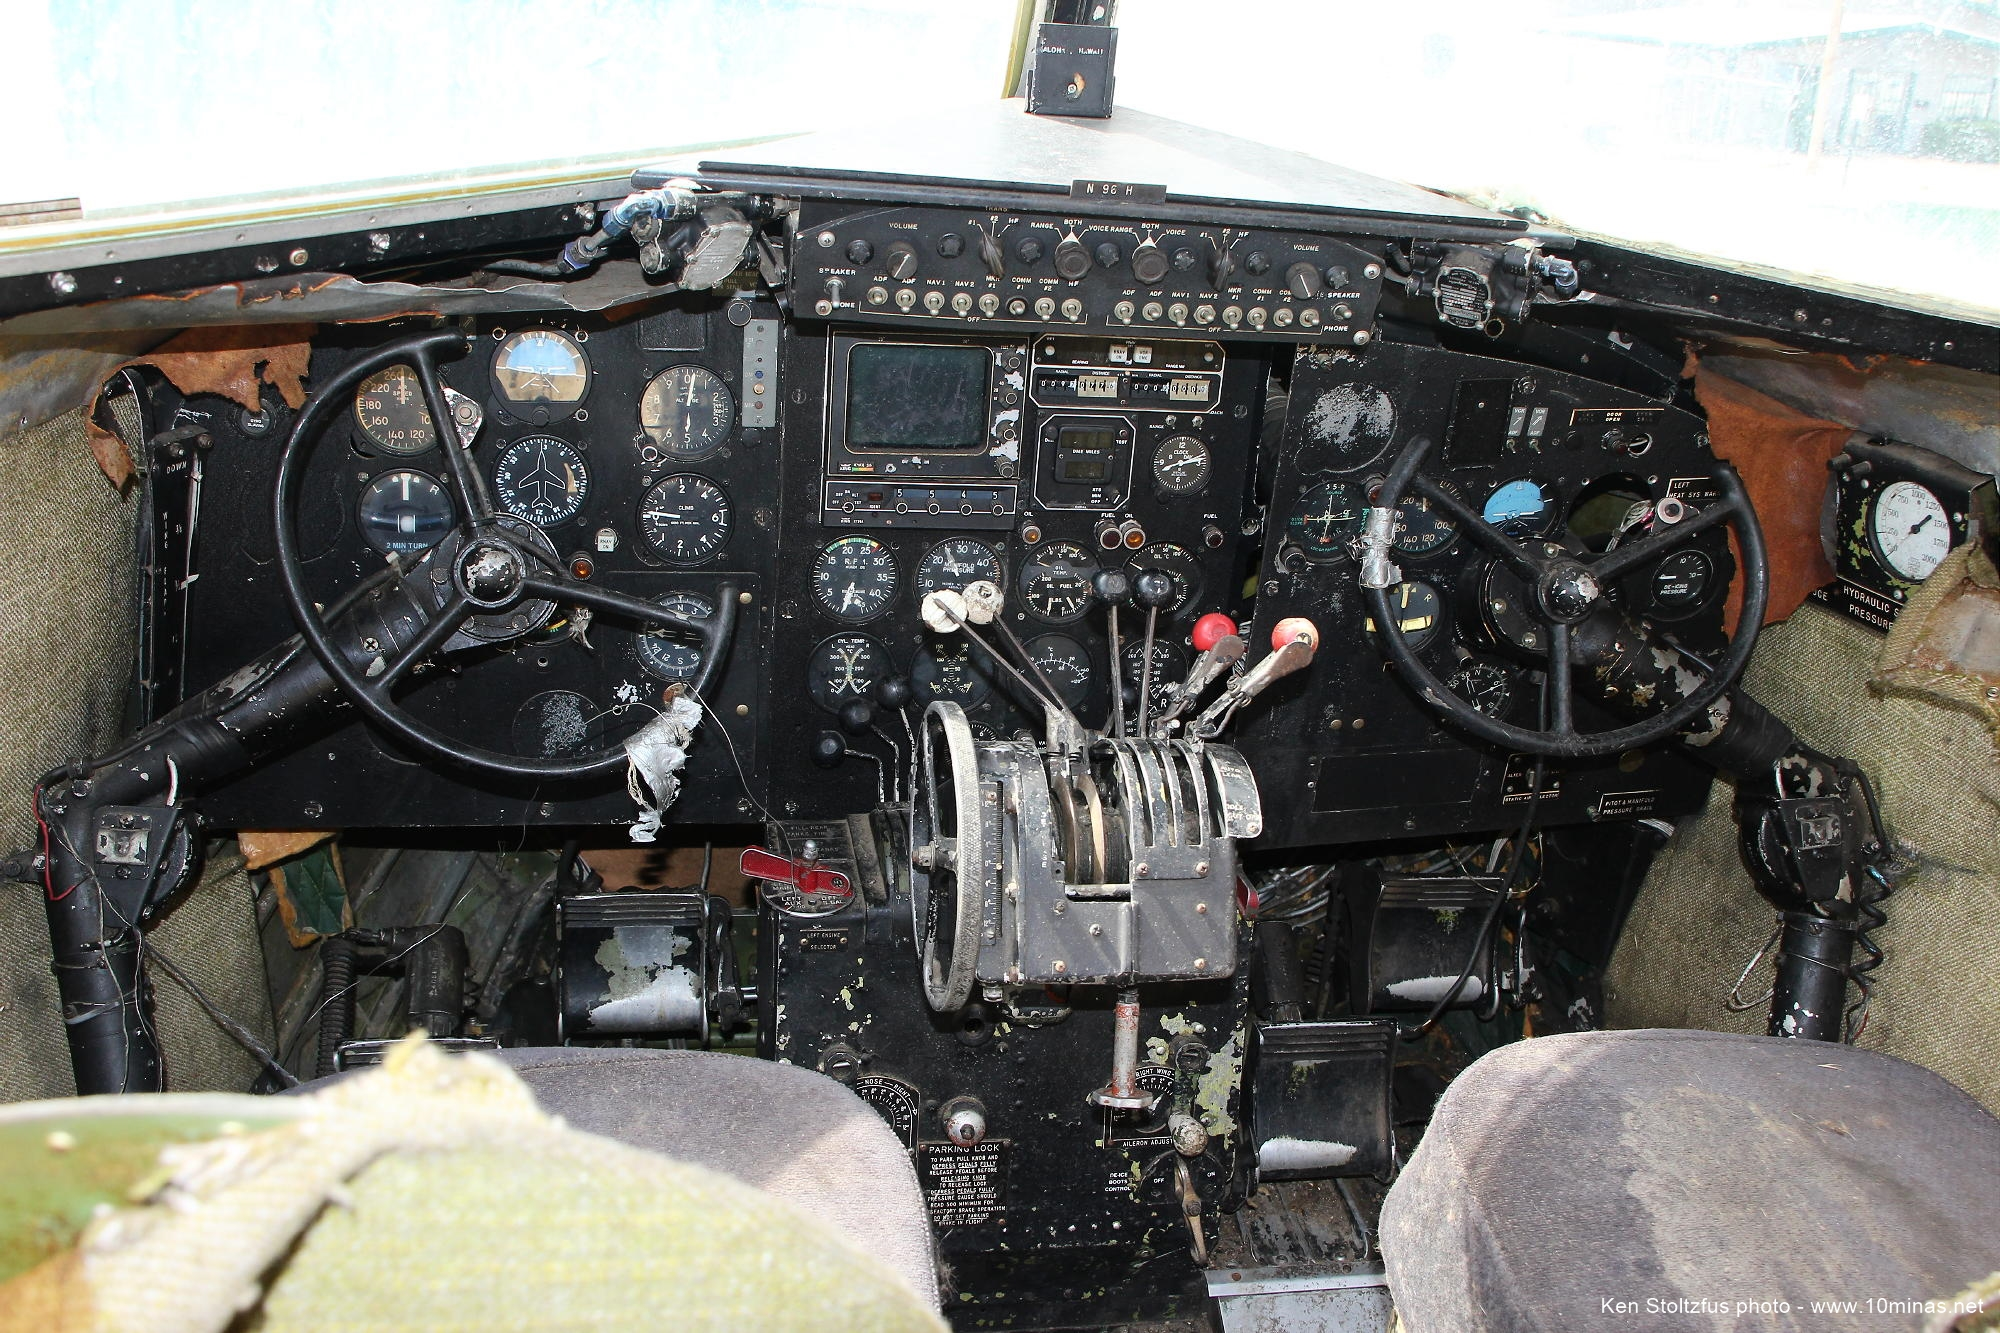 Douglas_DC-3_Cockpit_Instrument_Panel